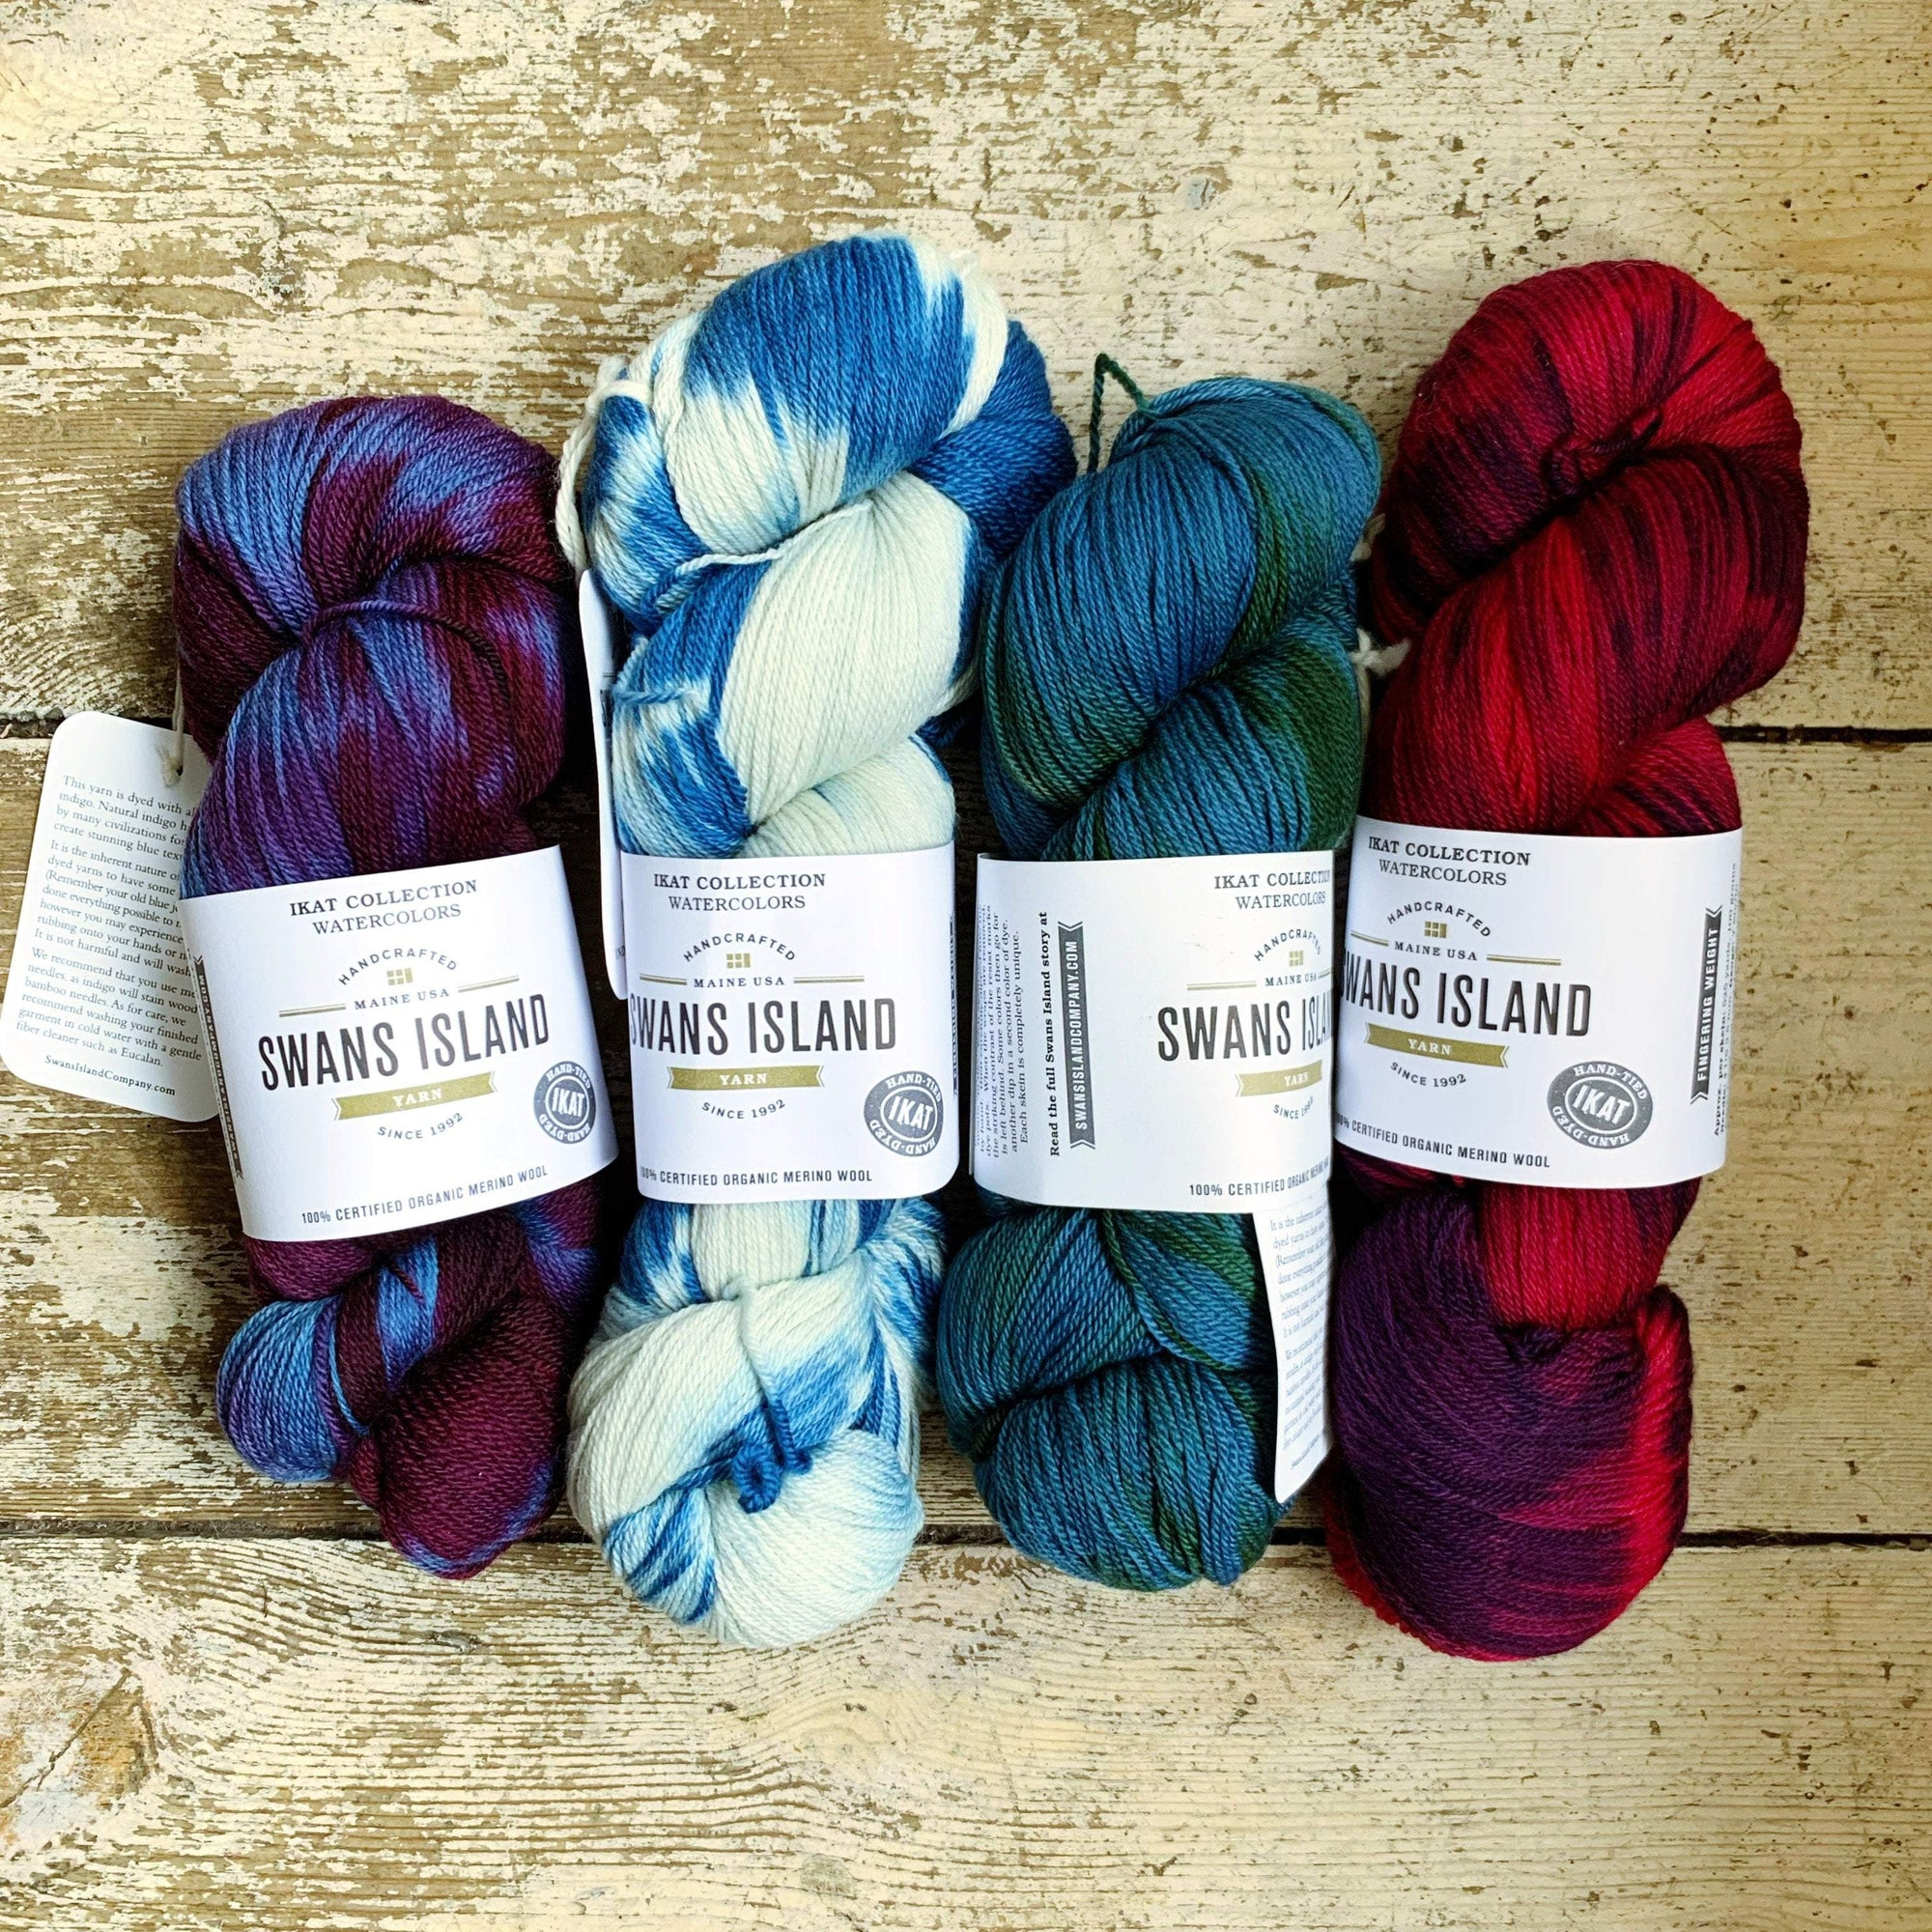 Ikat Watercolours Swans Island Yarn